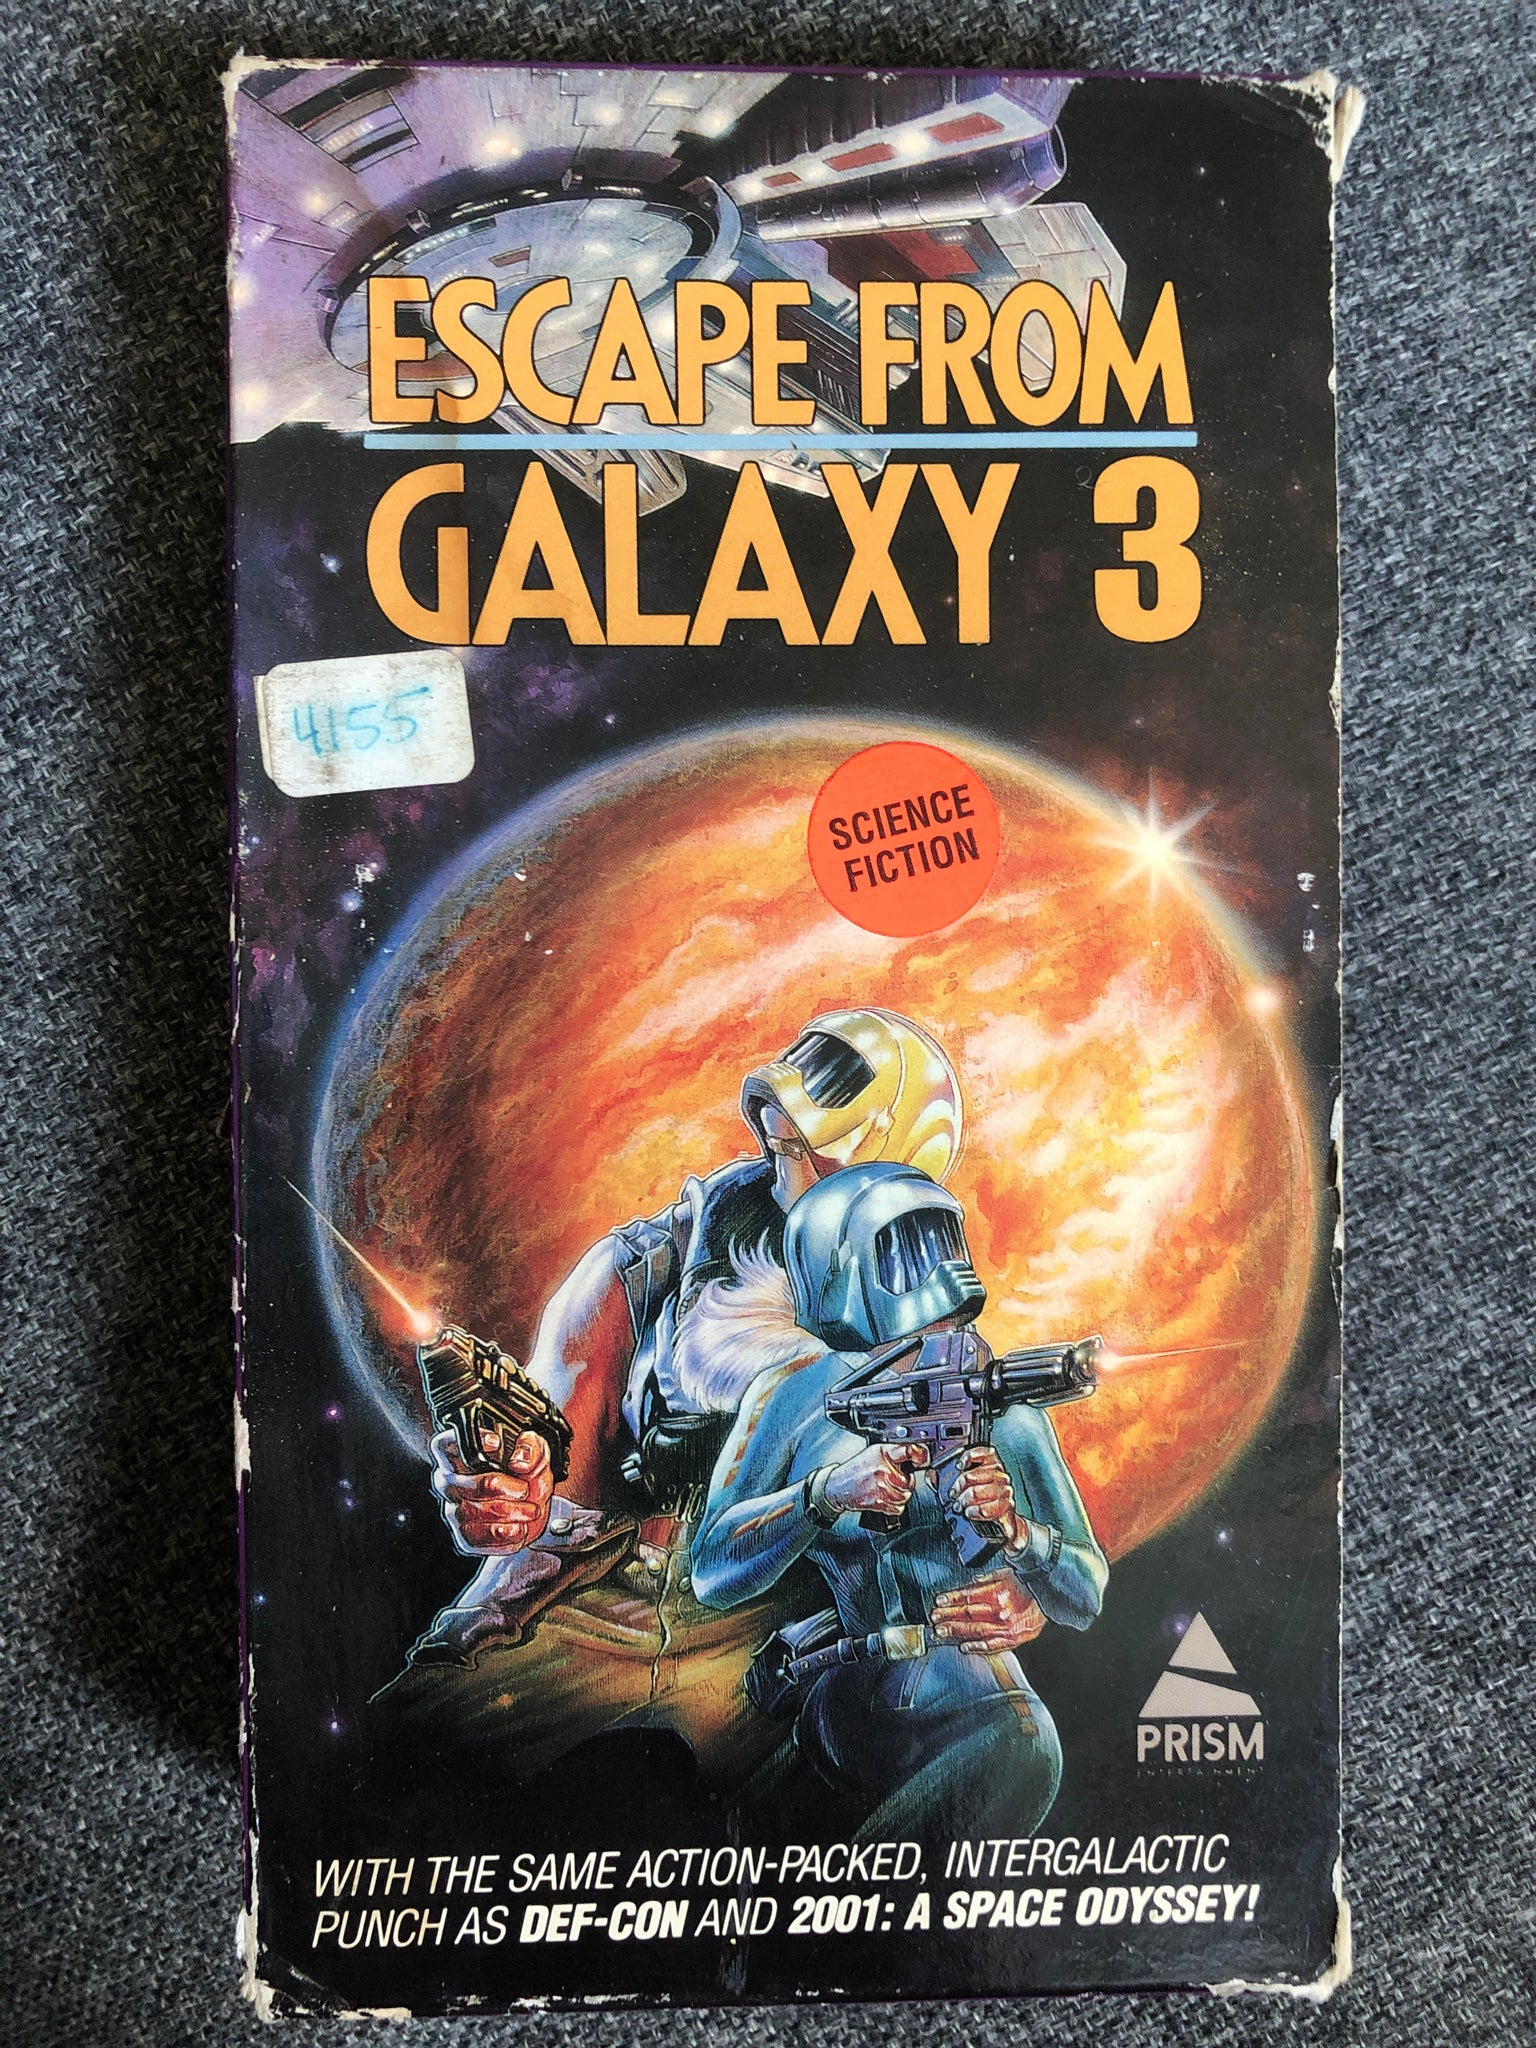 Escape from Galaxy 3